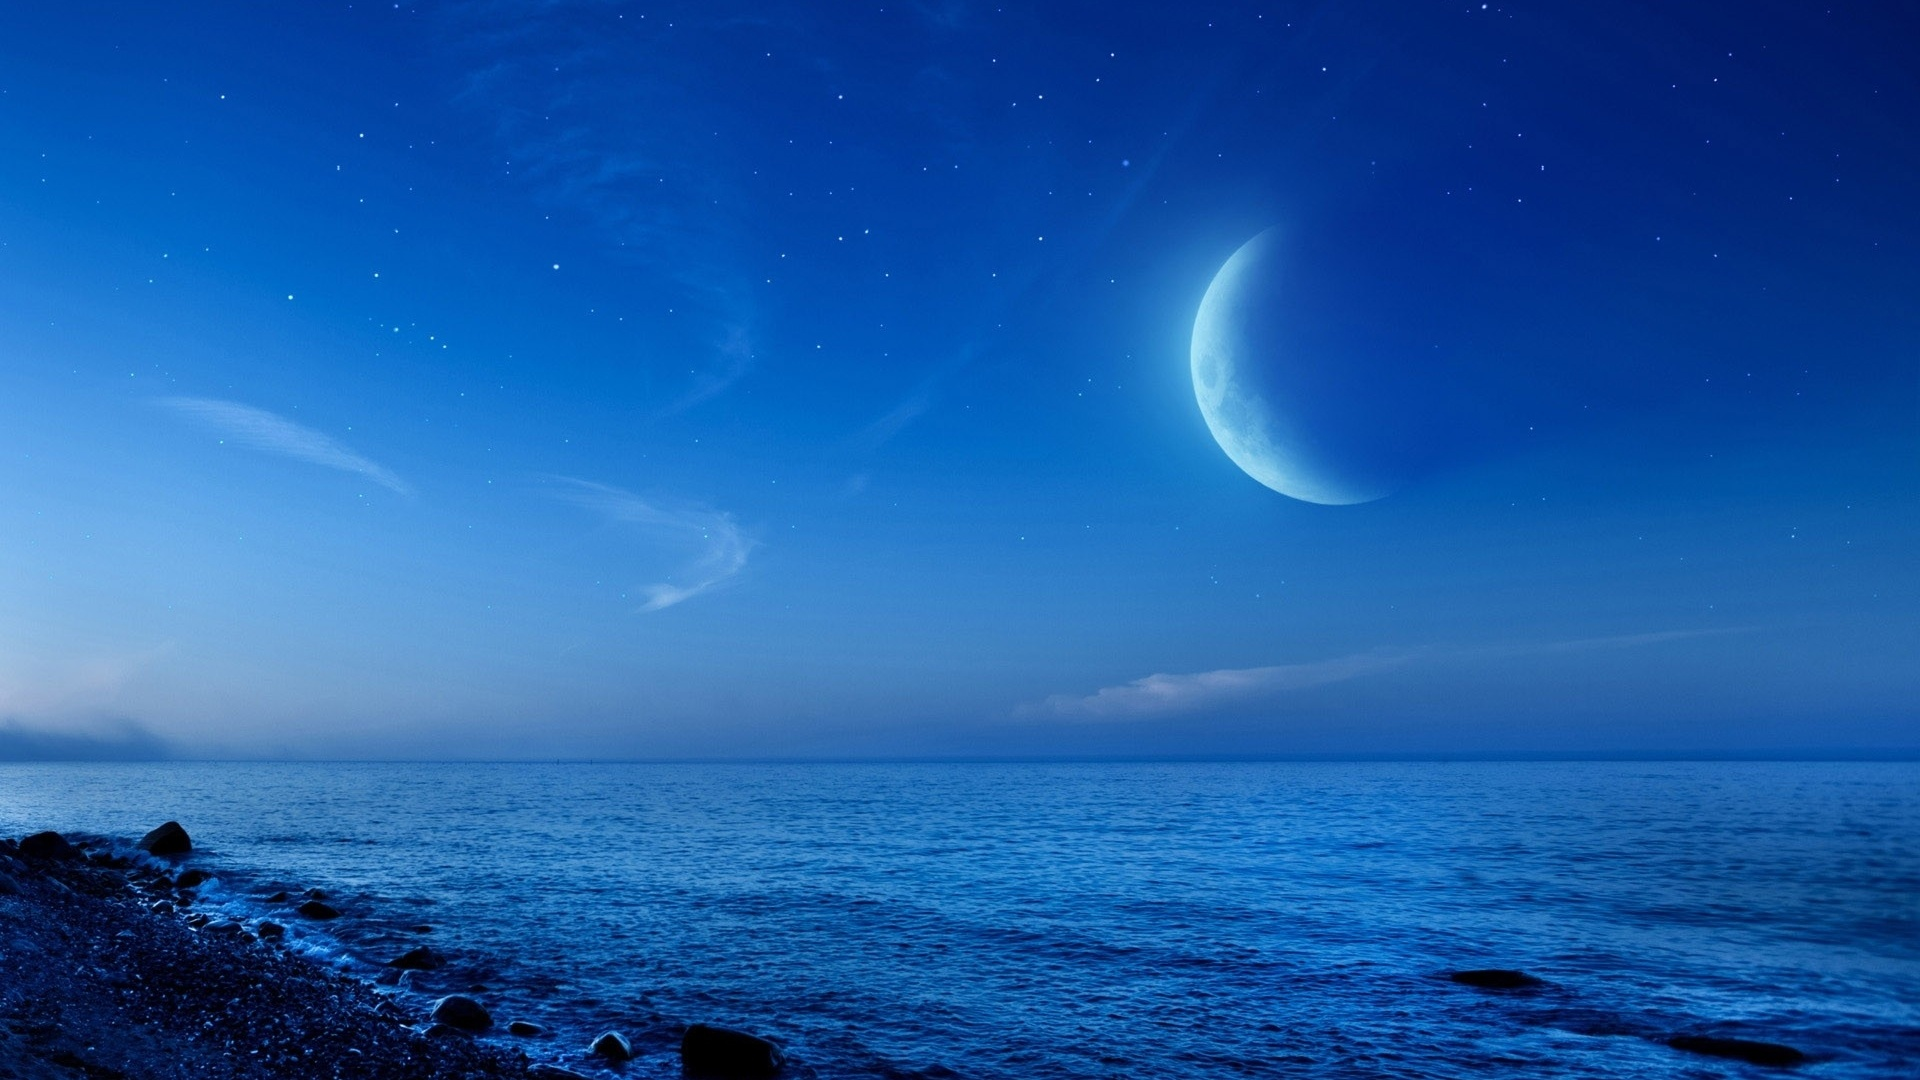 1920x1080 Ocean Beach &amp Moon Desktop PC And Mac Wallpaper